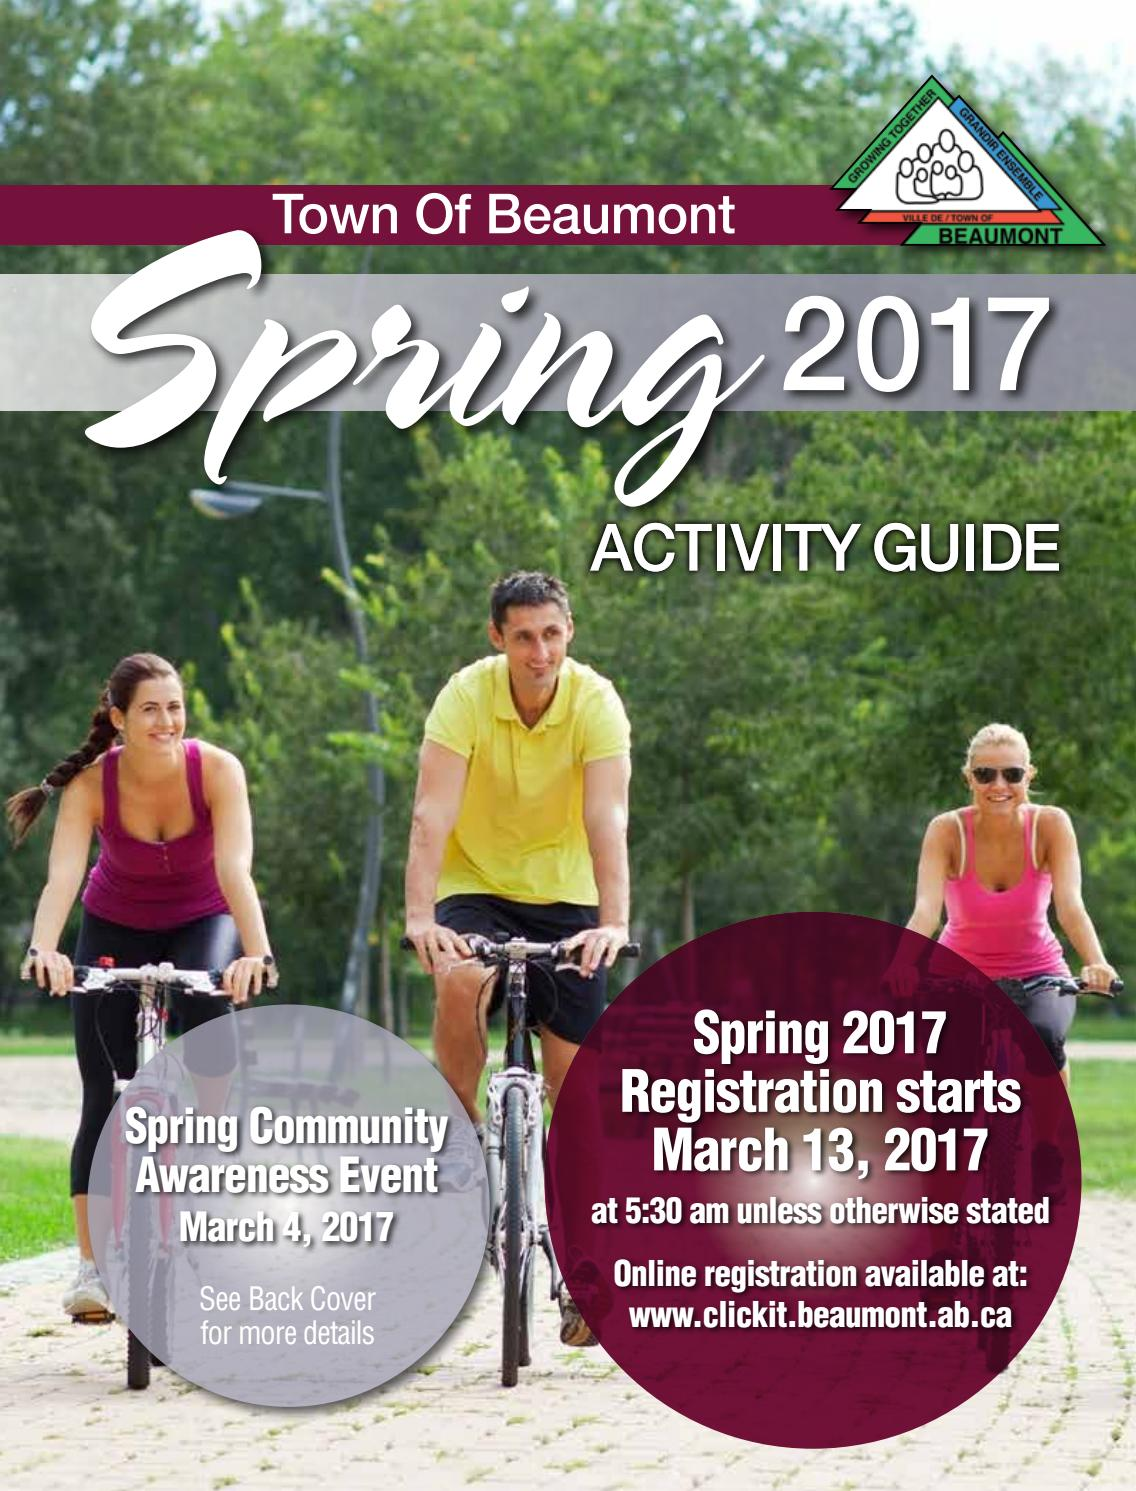 Spring 2017 Activity Guide By Beaumont Alberta Issuu 8220simplemouse8221 Smart Card Programmer